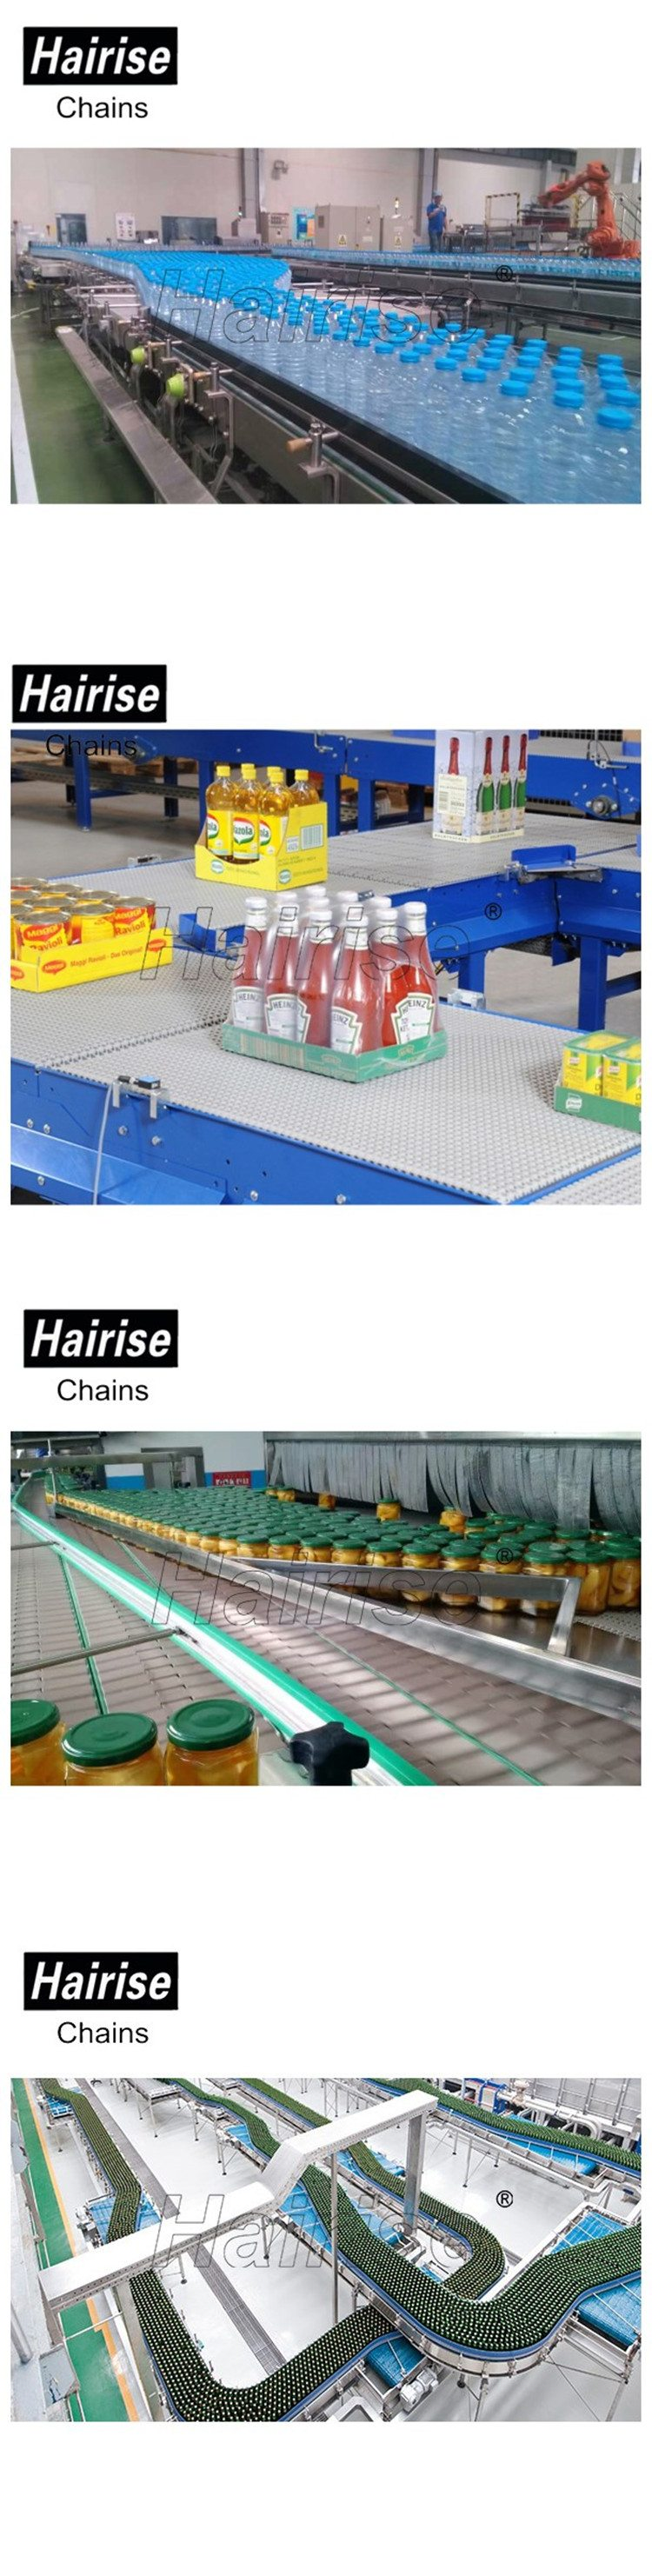 bottles-on-conveyor